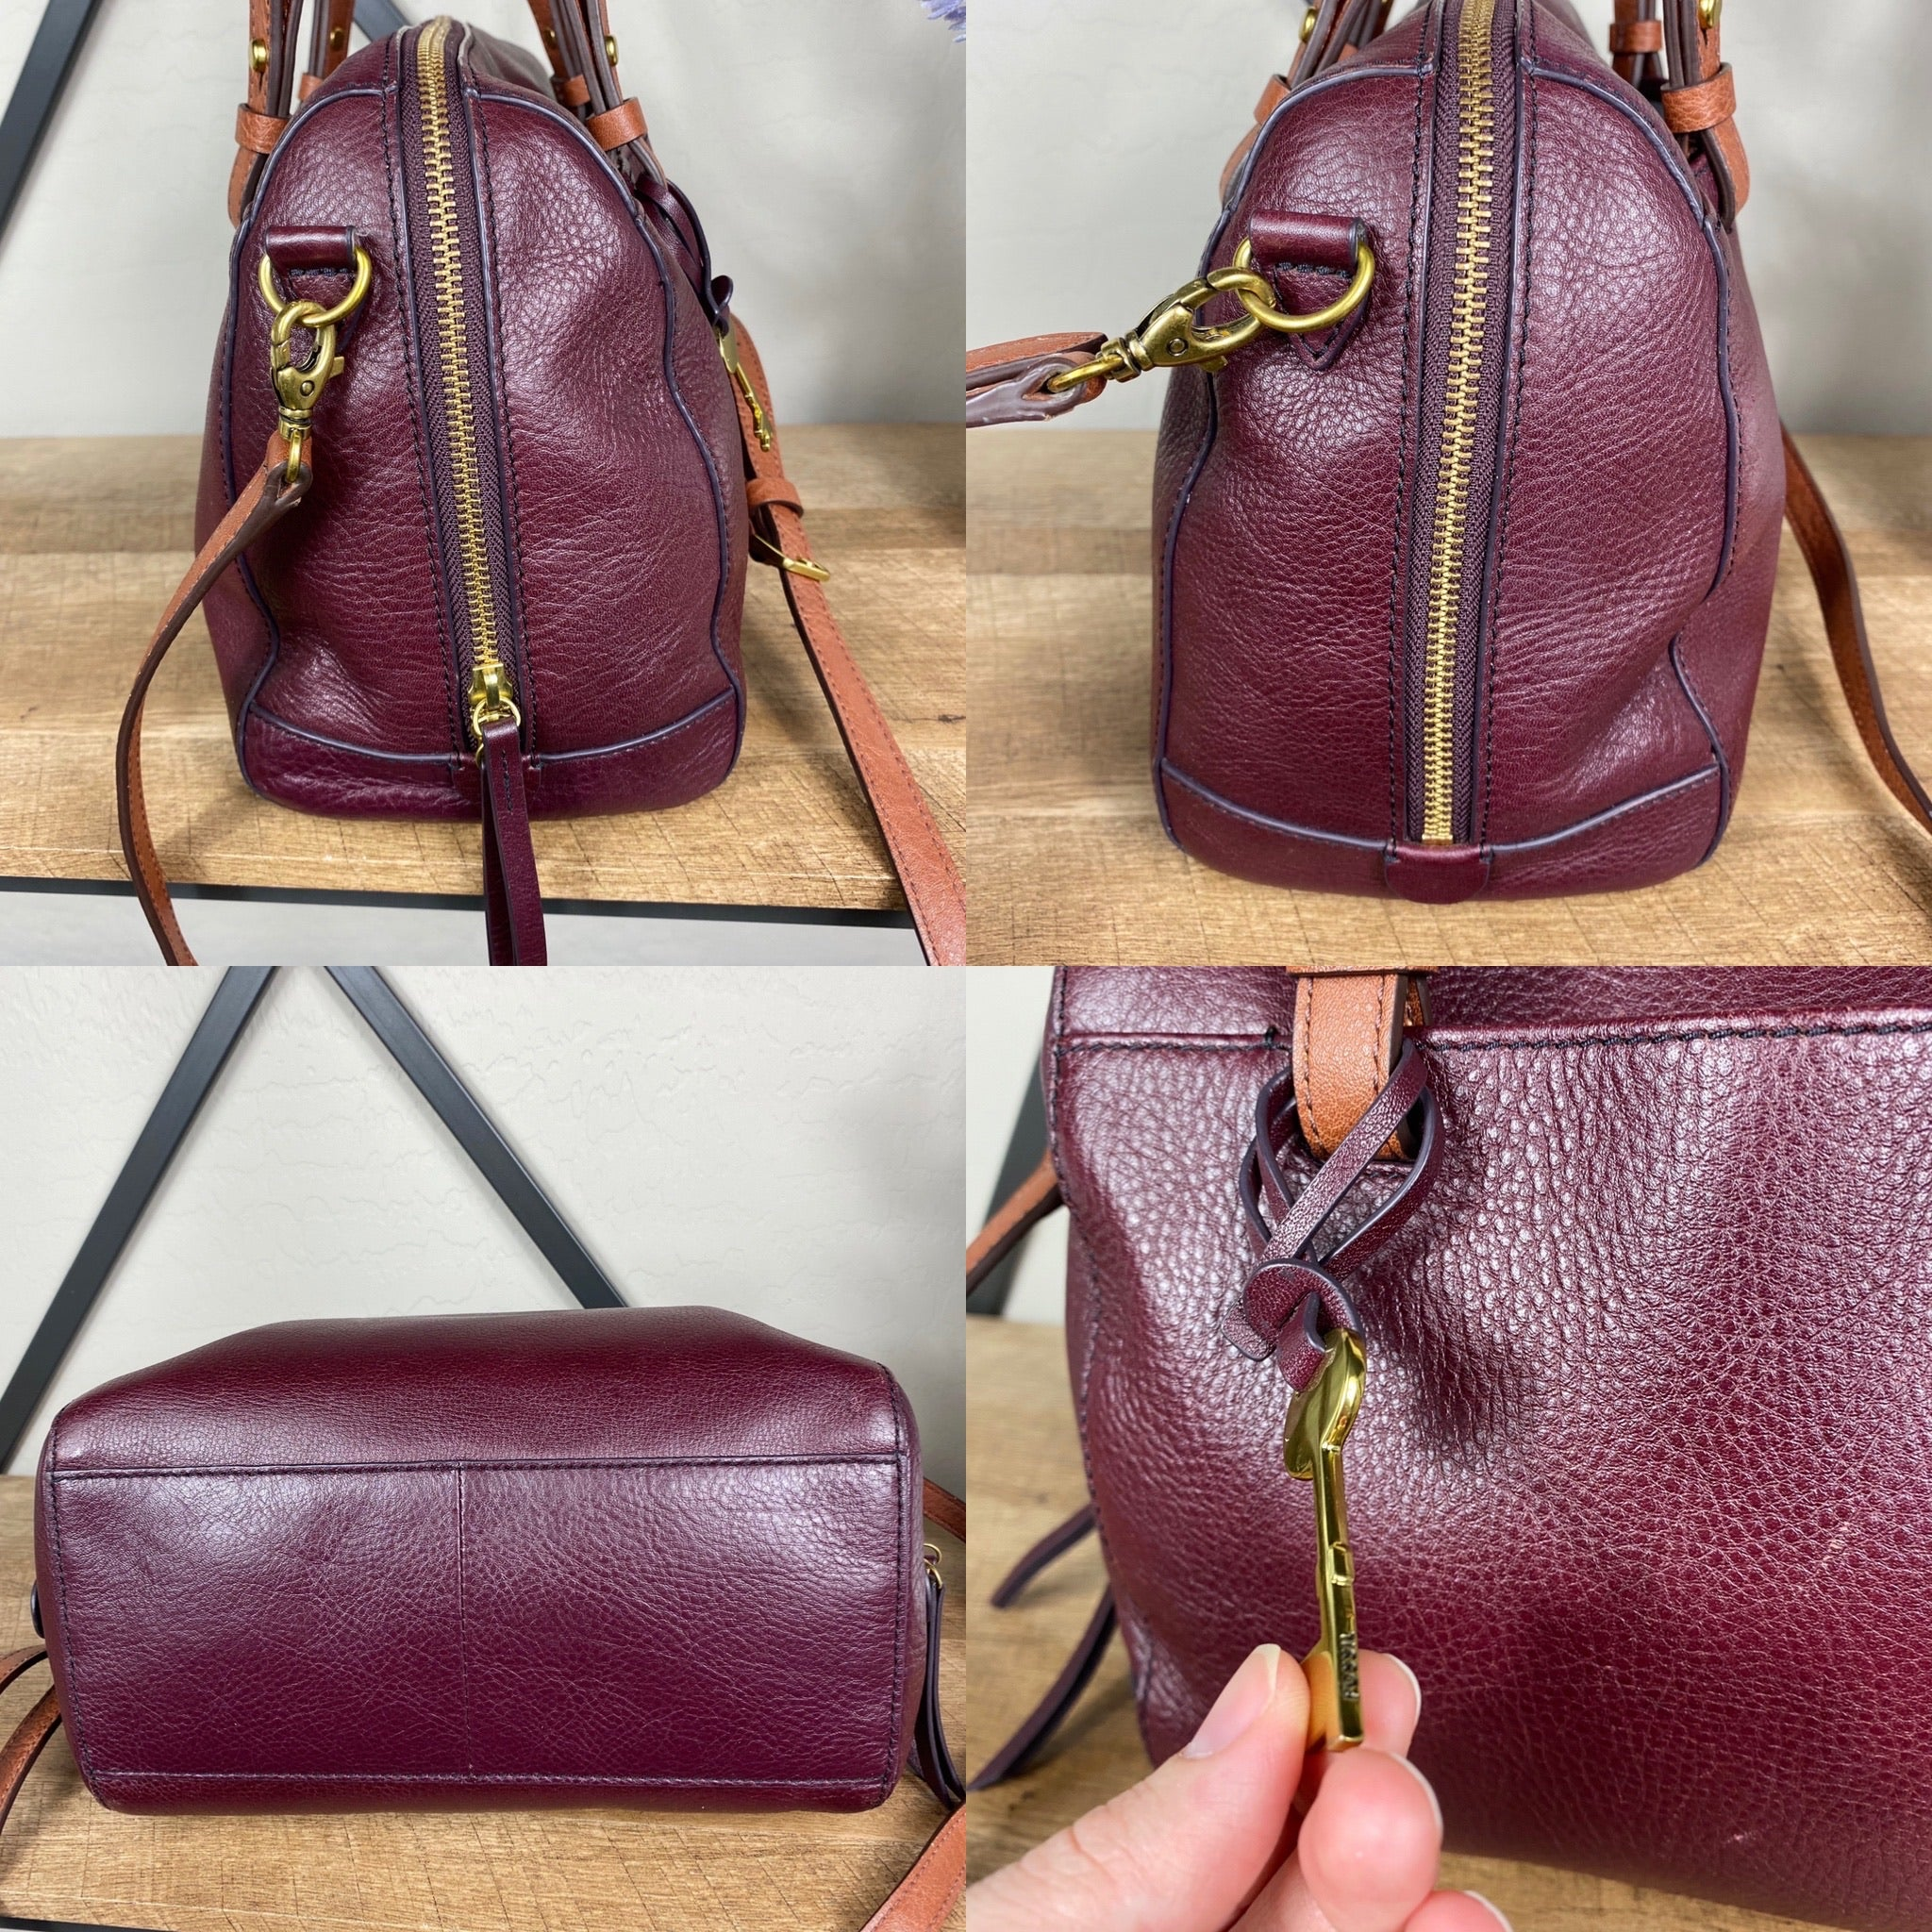 Fossil Rachel Leather Satchel Crossbody Bag